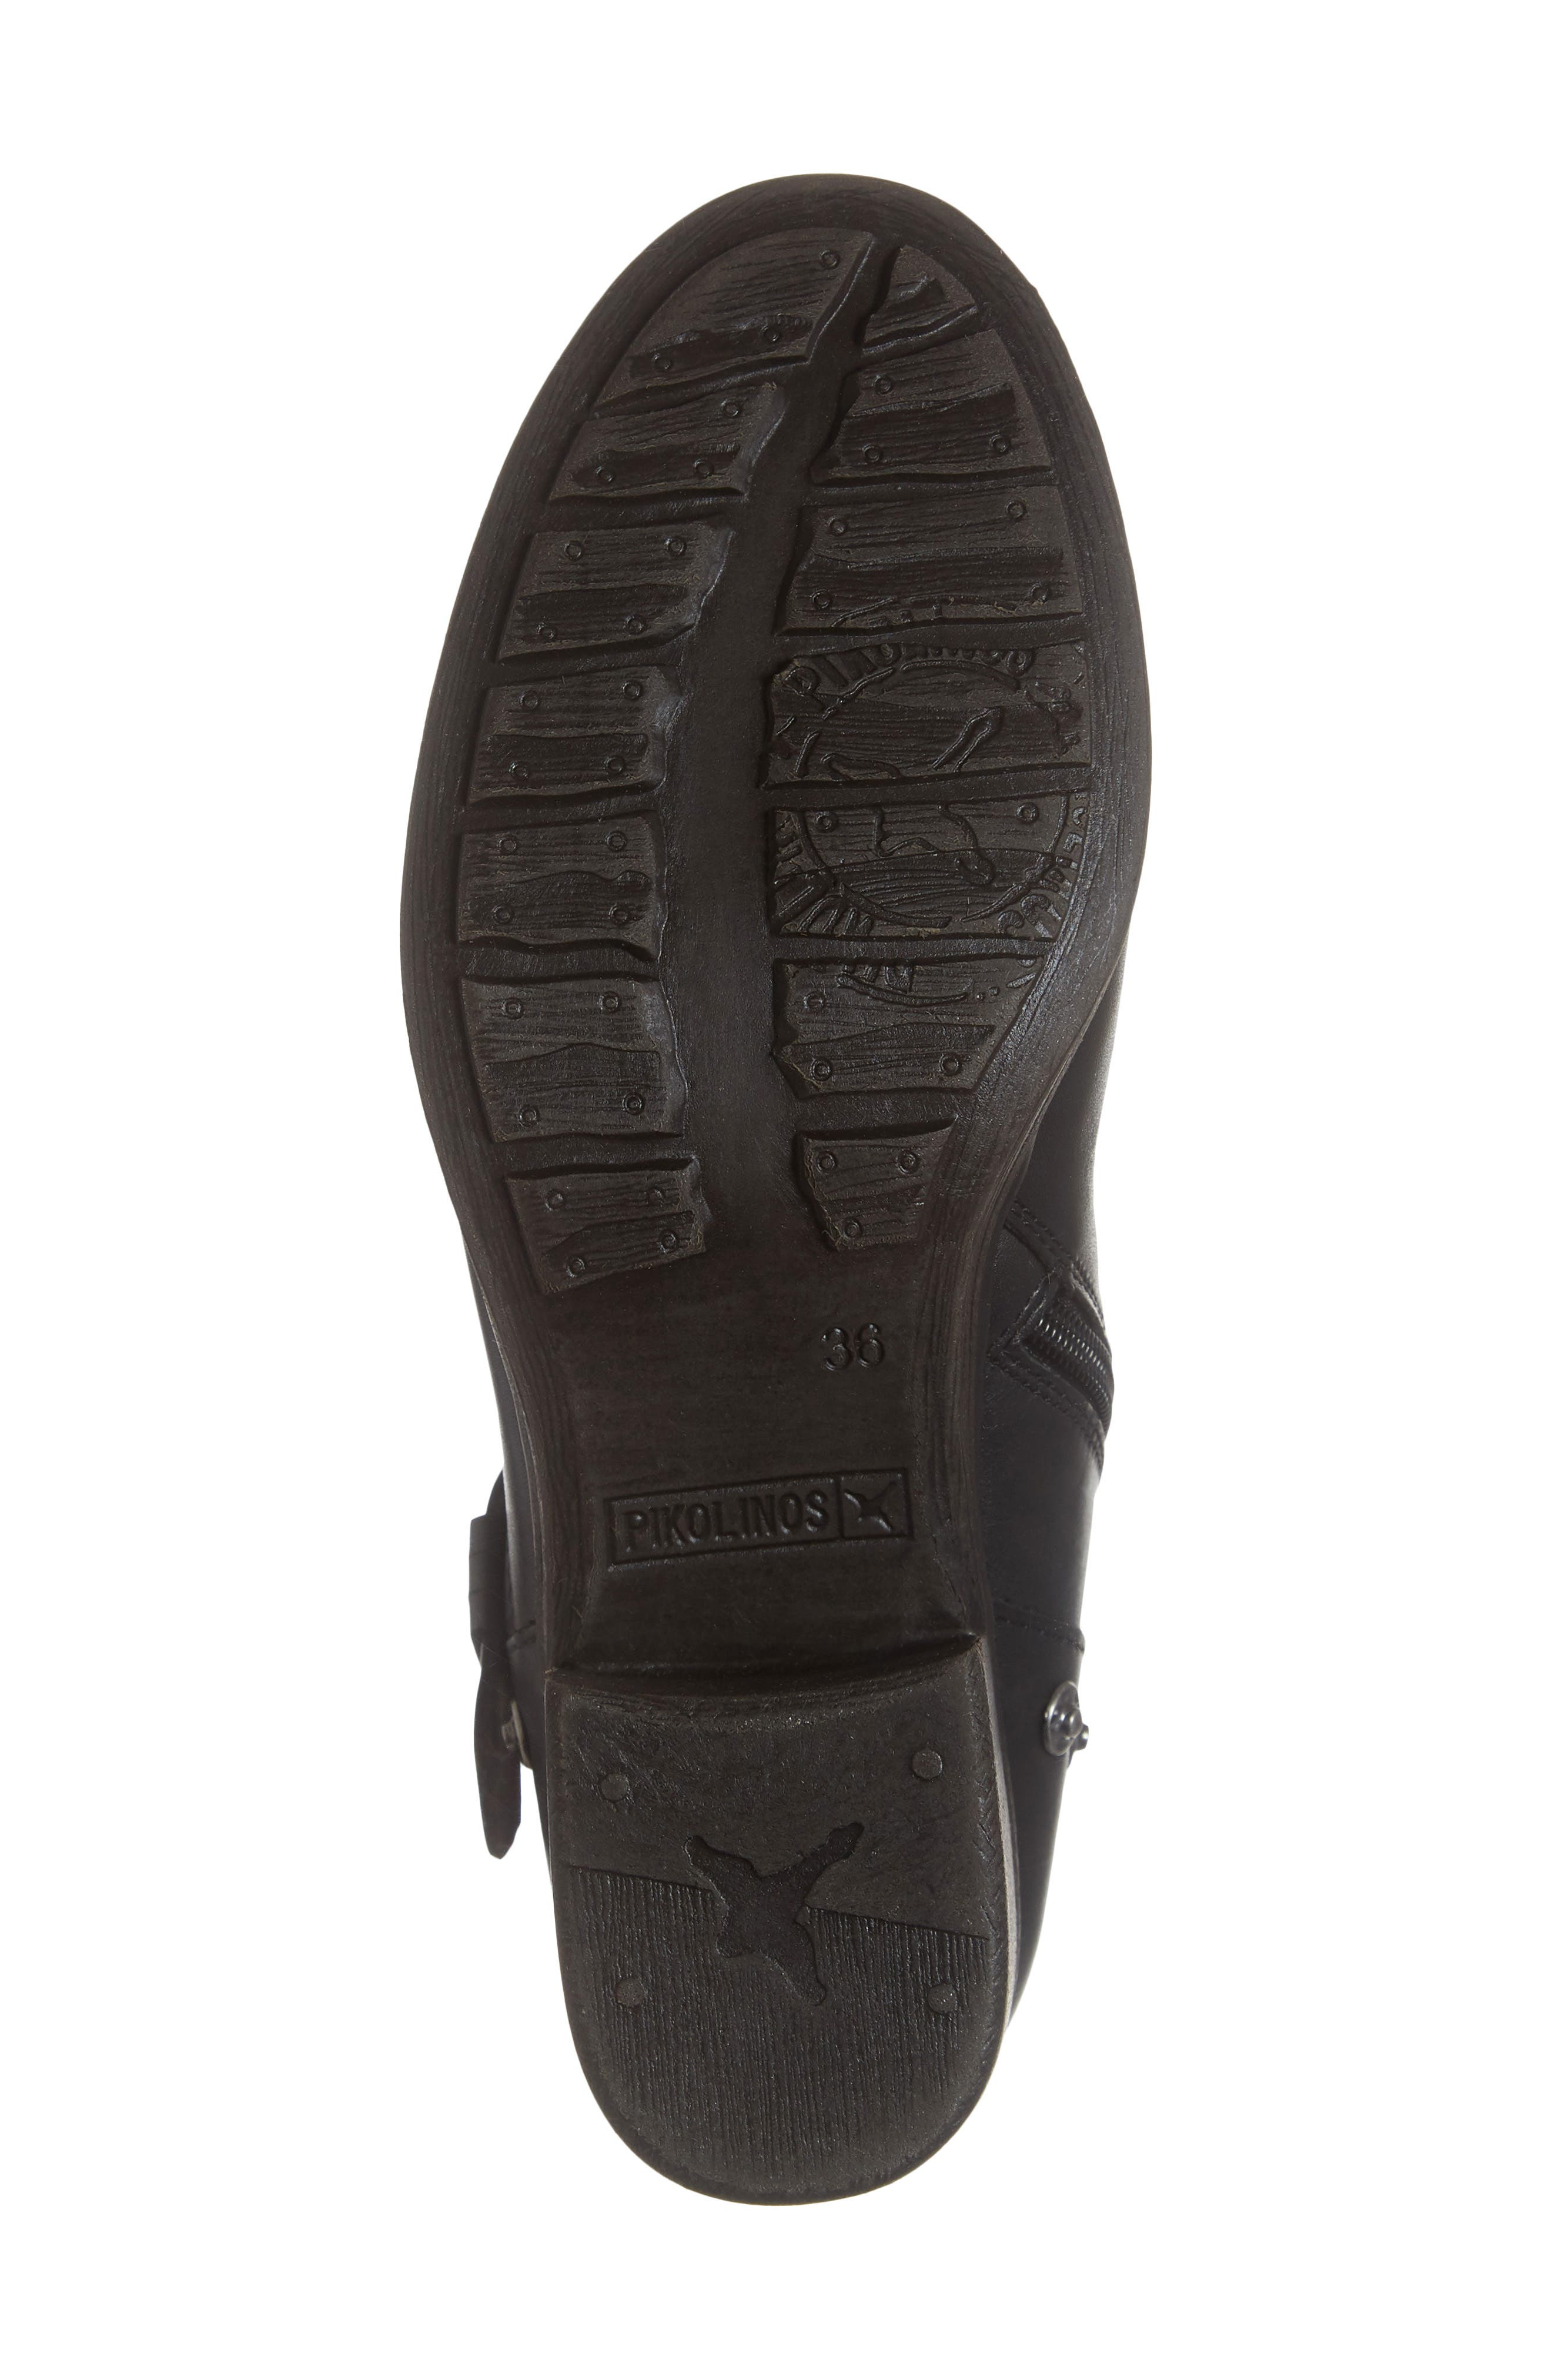 Lyon Embroidered Engineer Bootie,                             Alternate thumbnail 6, color,                             BLACK LEATHER